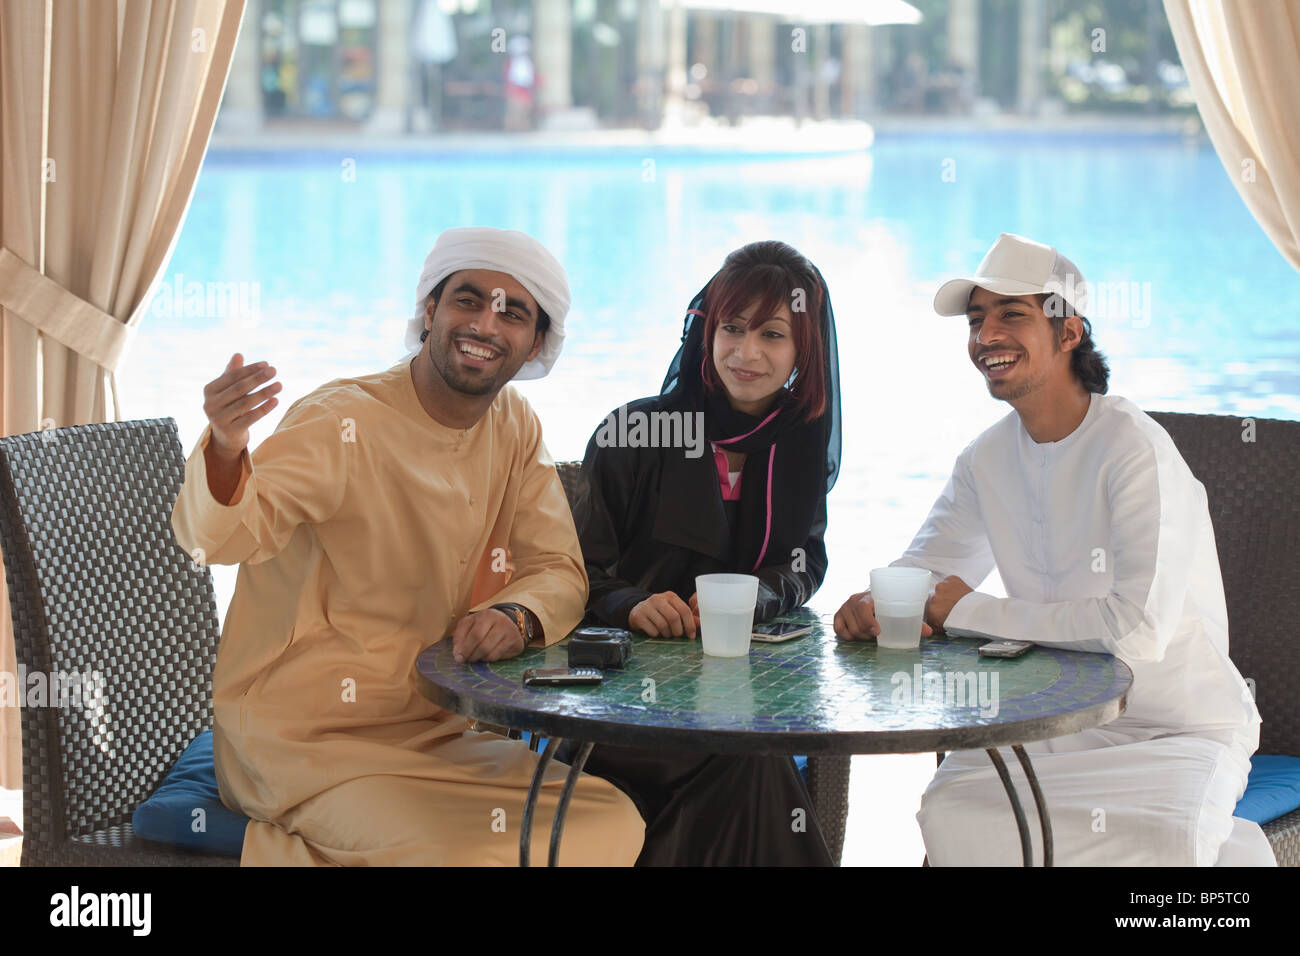 Middle Eastern people sitting at table outdoors - Stock Image